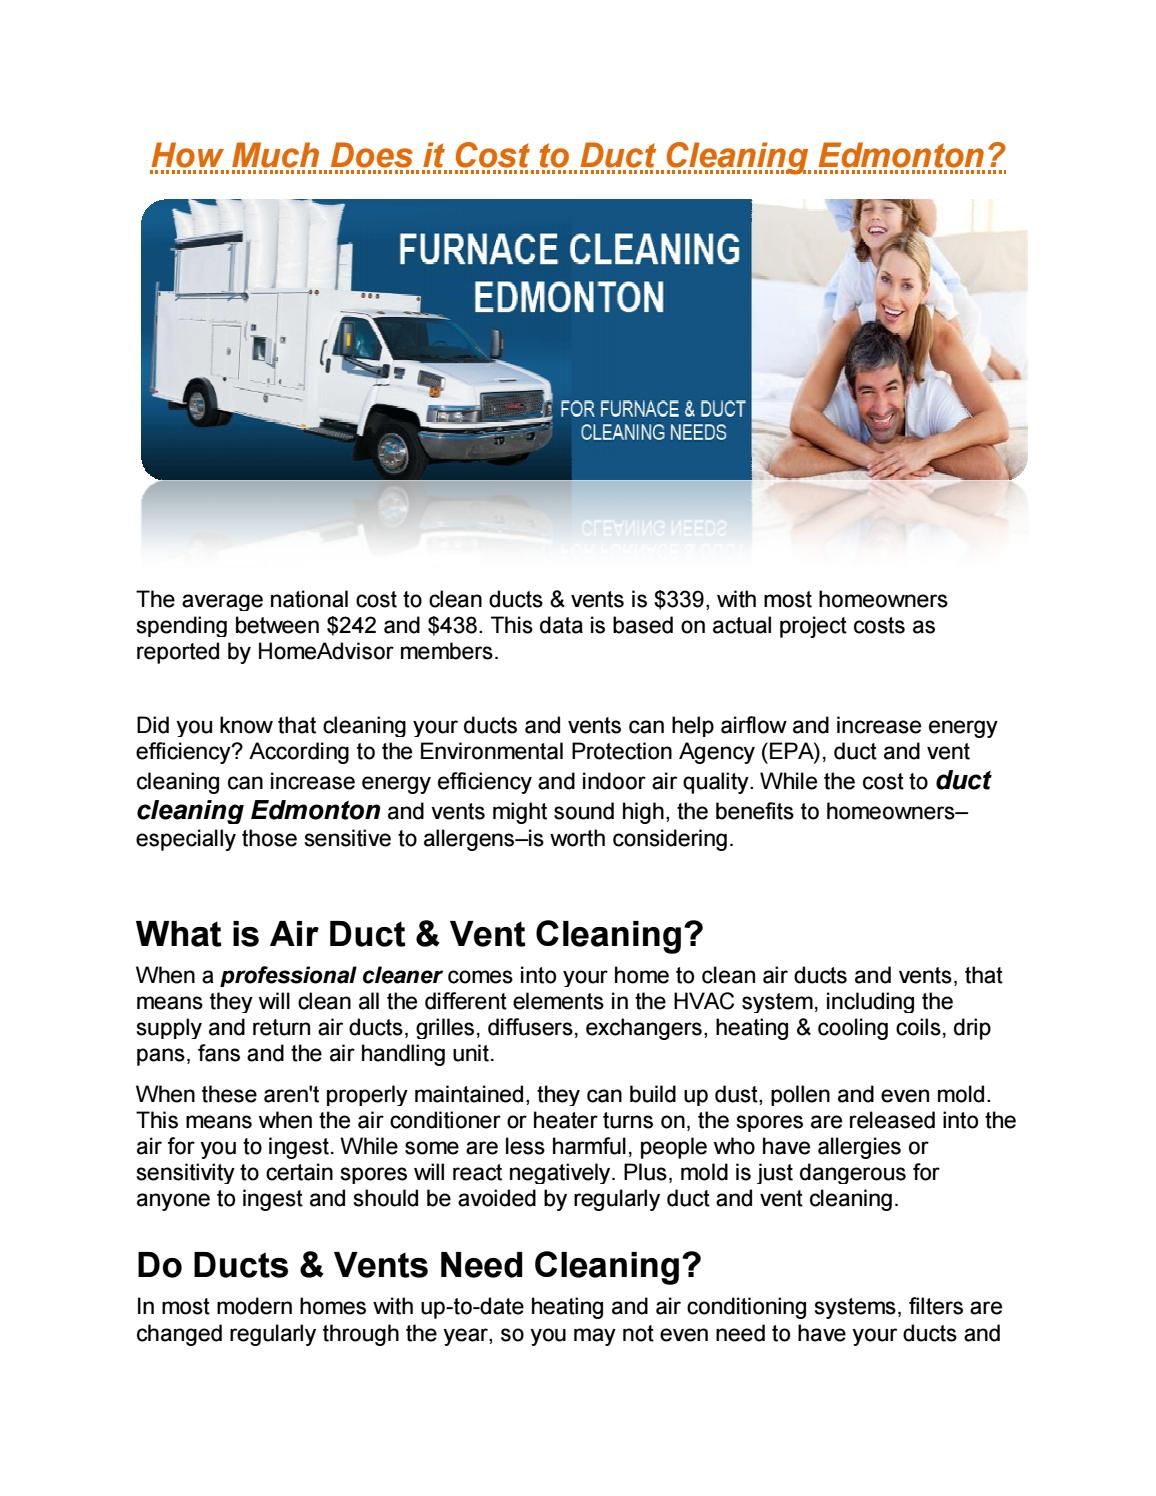 How Much Does It Cost To Duct Cleaning Edmonton By